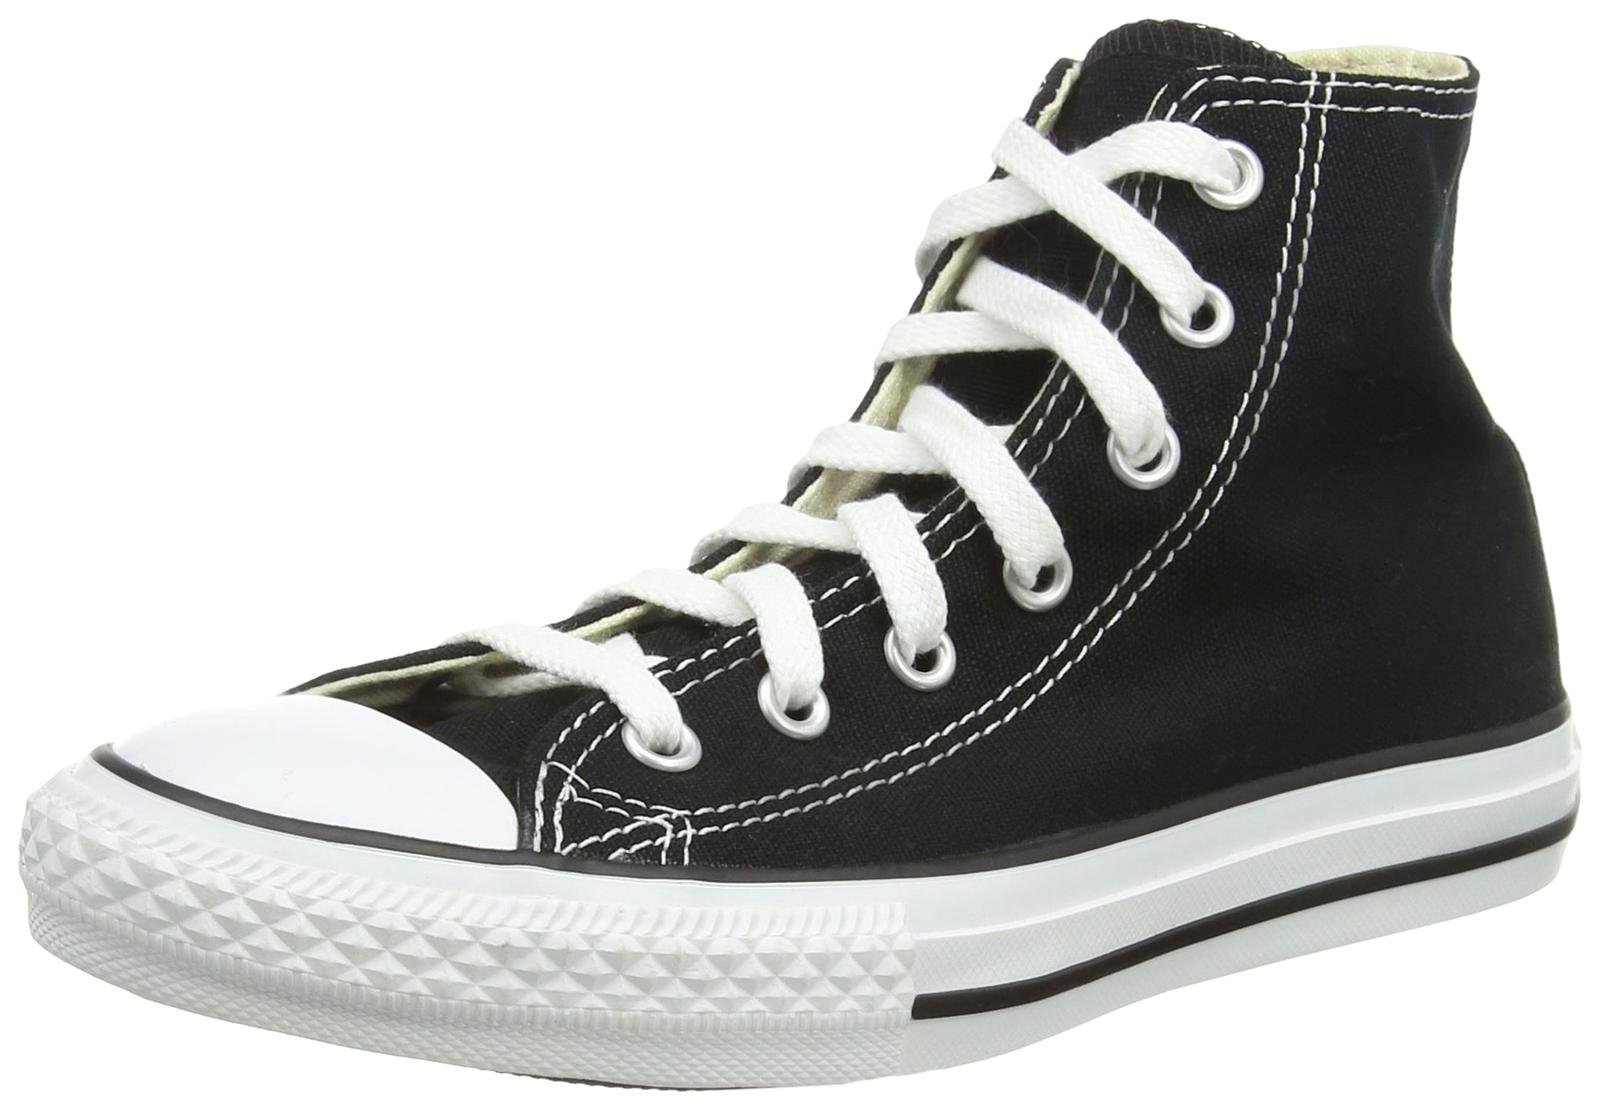 Converse Chuck Taylor All Star Hi Shoe - Toddlers' Black, 6.0